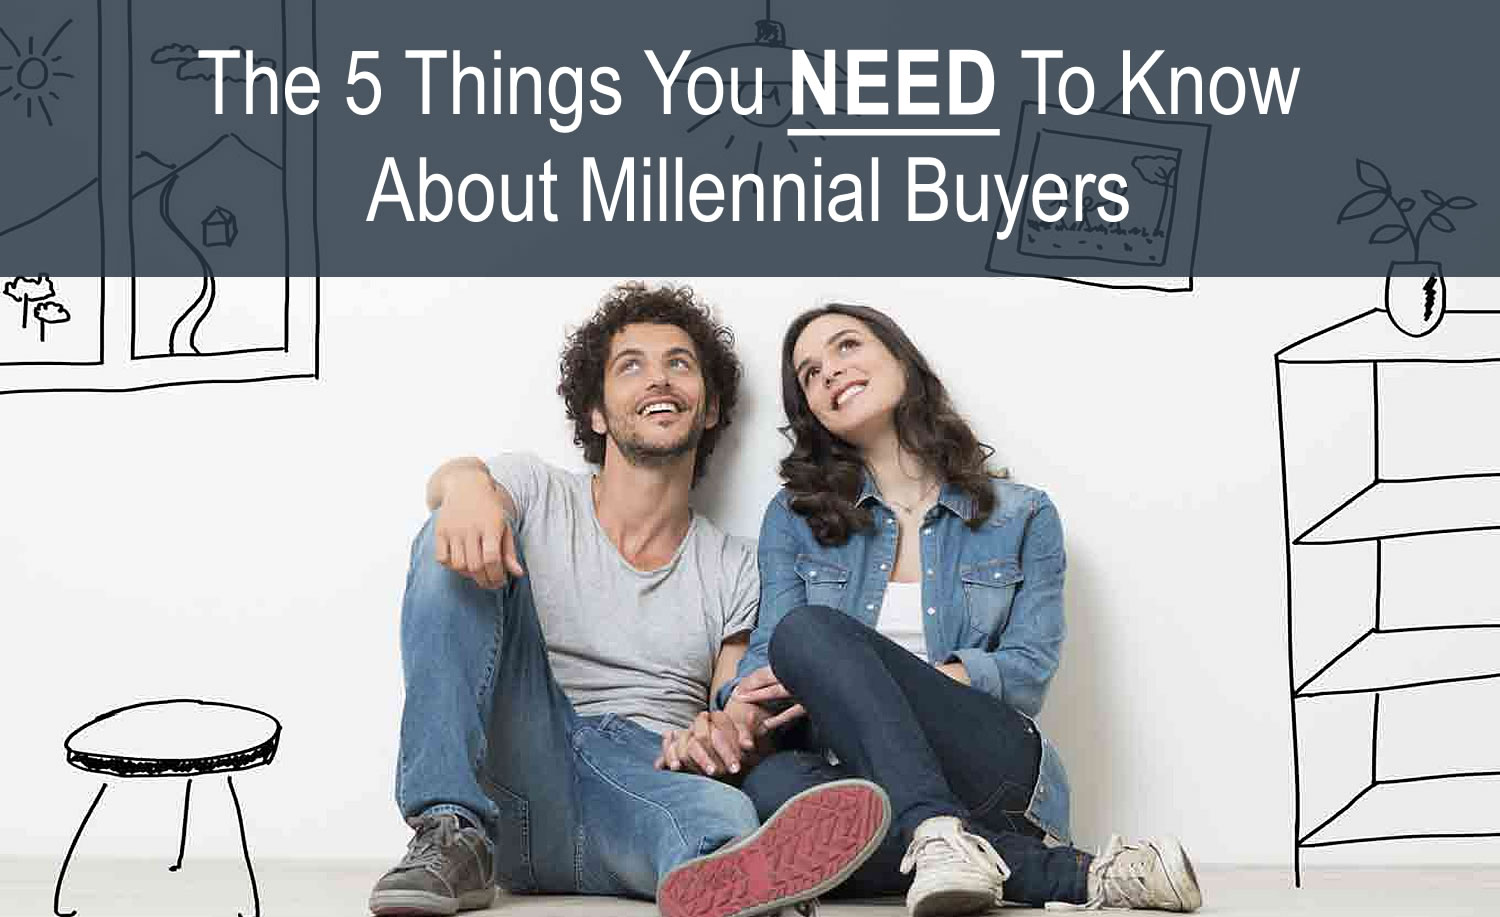 5 THINGS YOU NEED TO KNOW ABOUT MILLENNIAL BUYERS